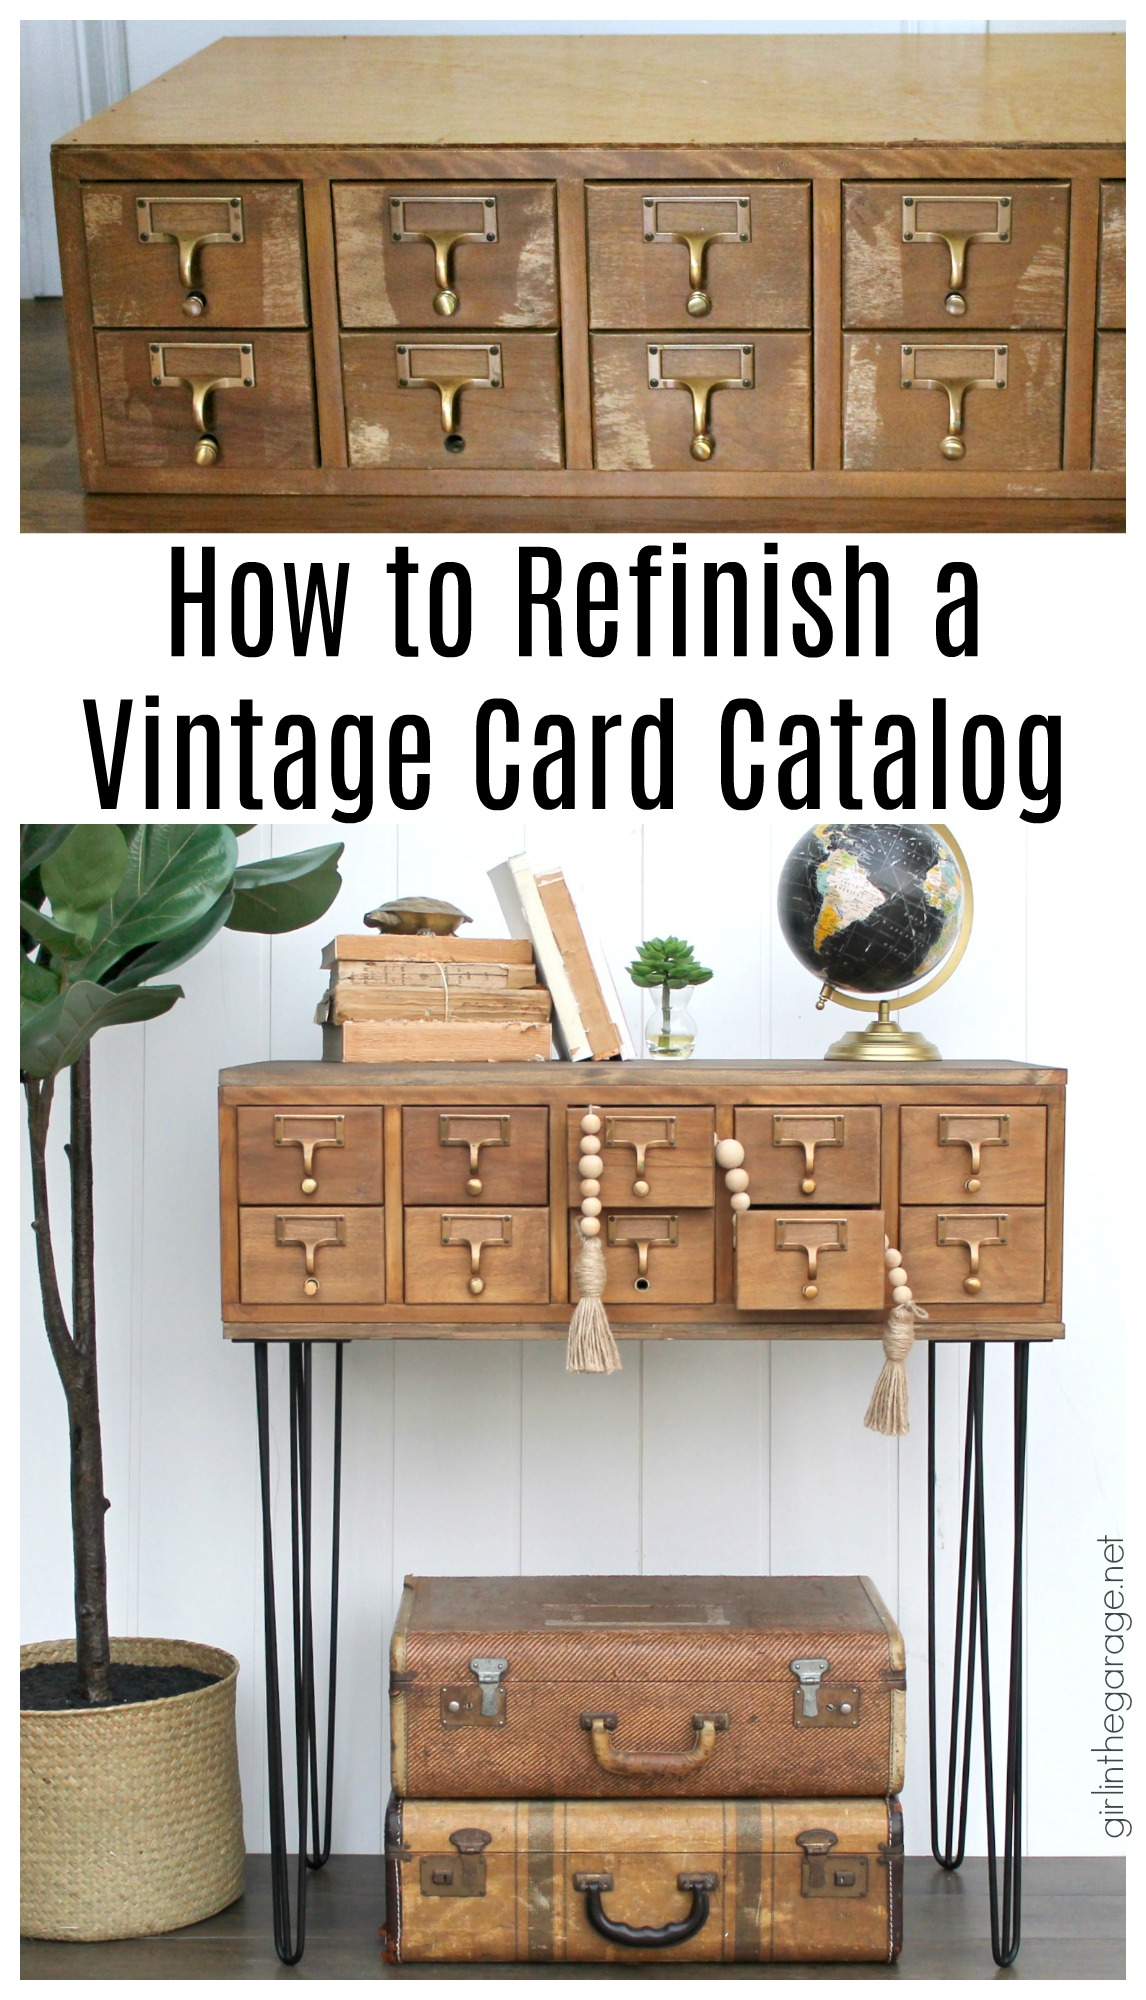 Most Popular DIY Projects of the Year - DIY furniture makeover and decor ideas by Girl in the Garage